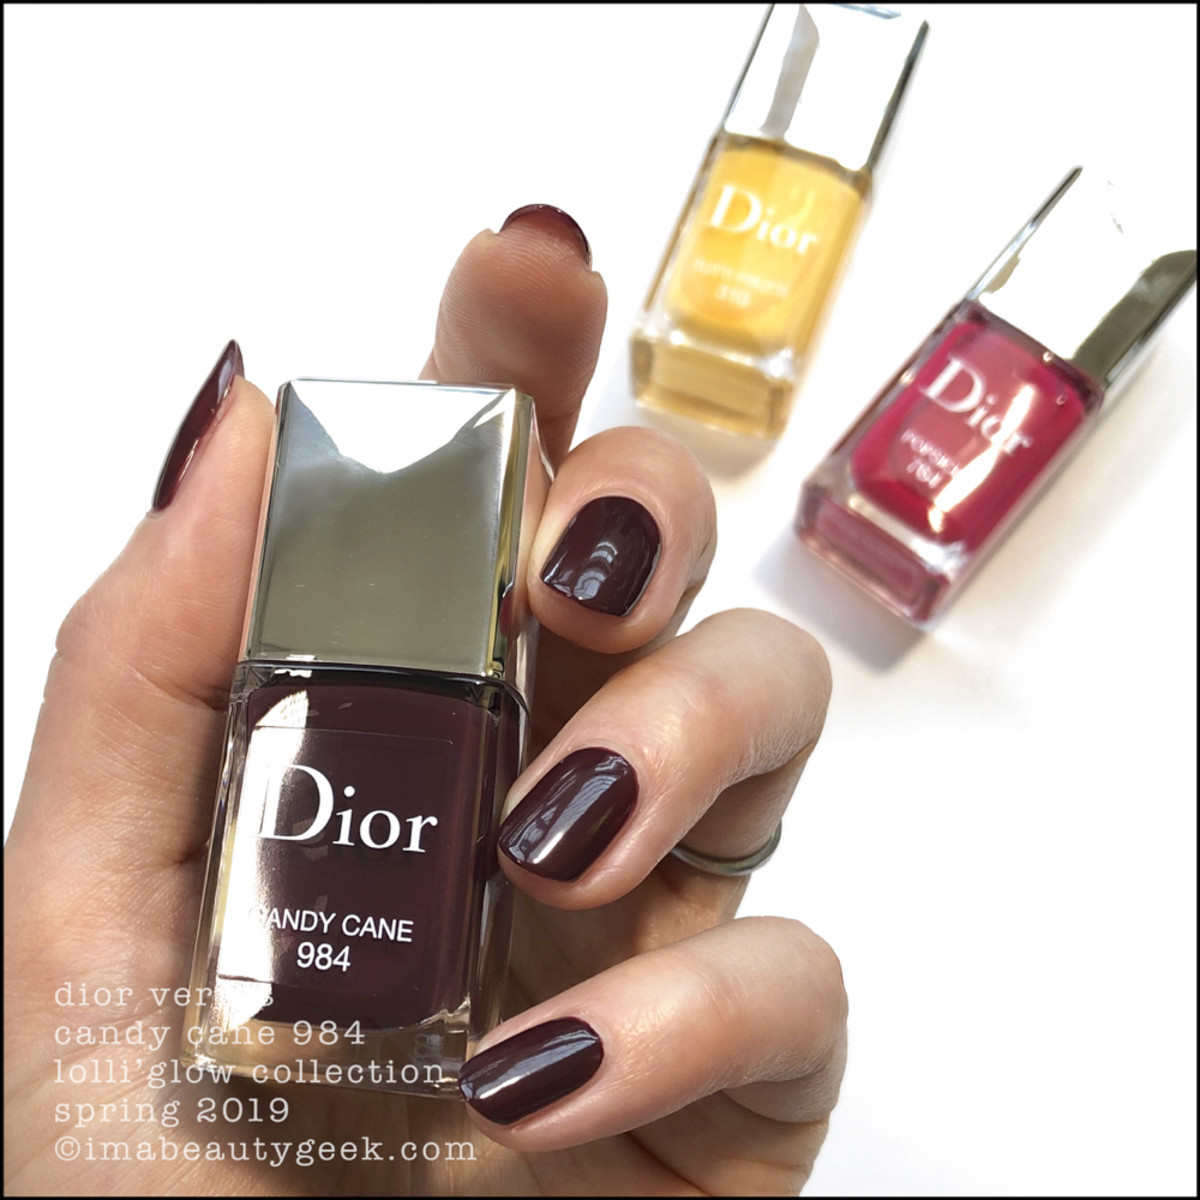 Dior Candy Cane 984 - Dior Lolli'Glow Swatches Spring 2019